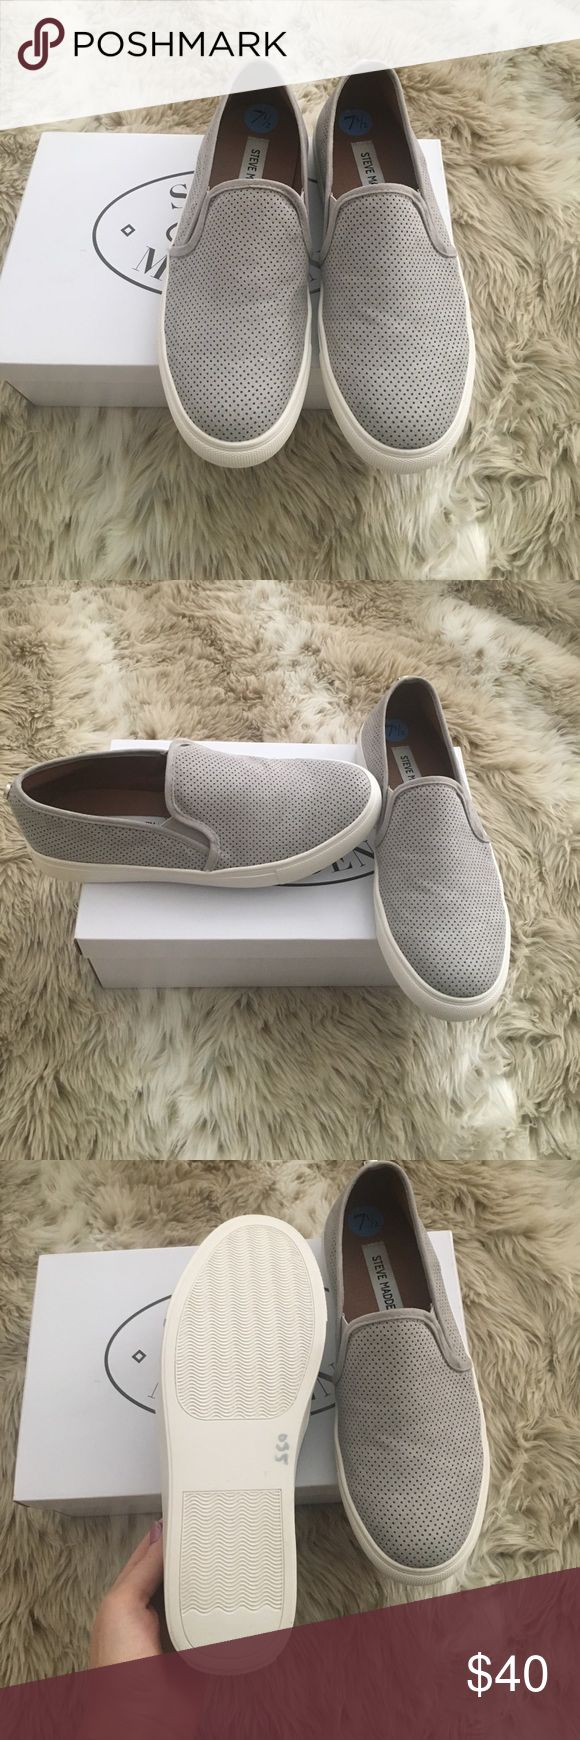 Brand New Steve Madden Shoes Super cute comfy gray slip on Steve Madden Shoes Steve Madden Shoes Sneakers